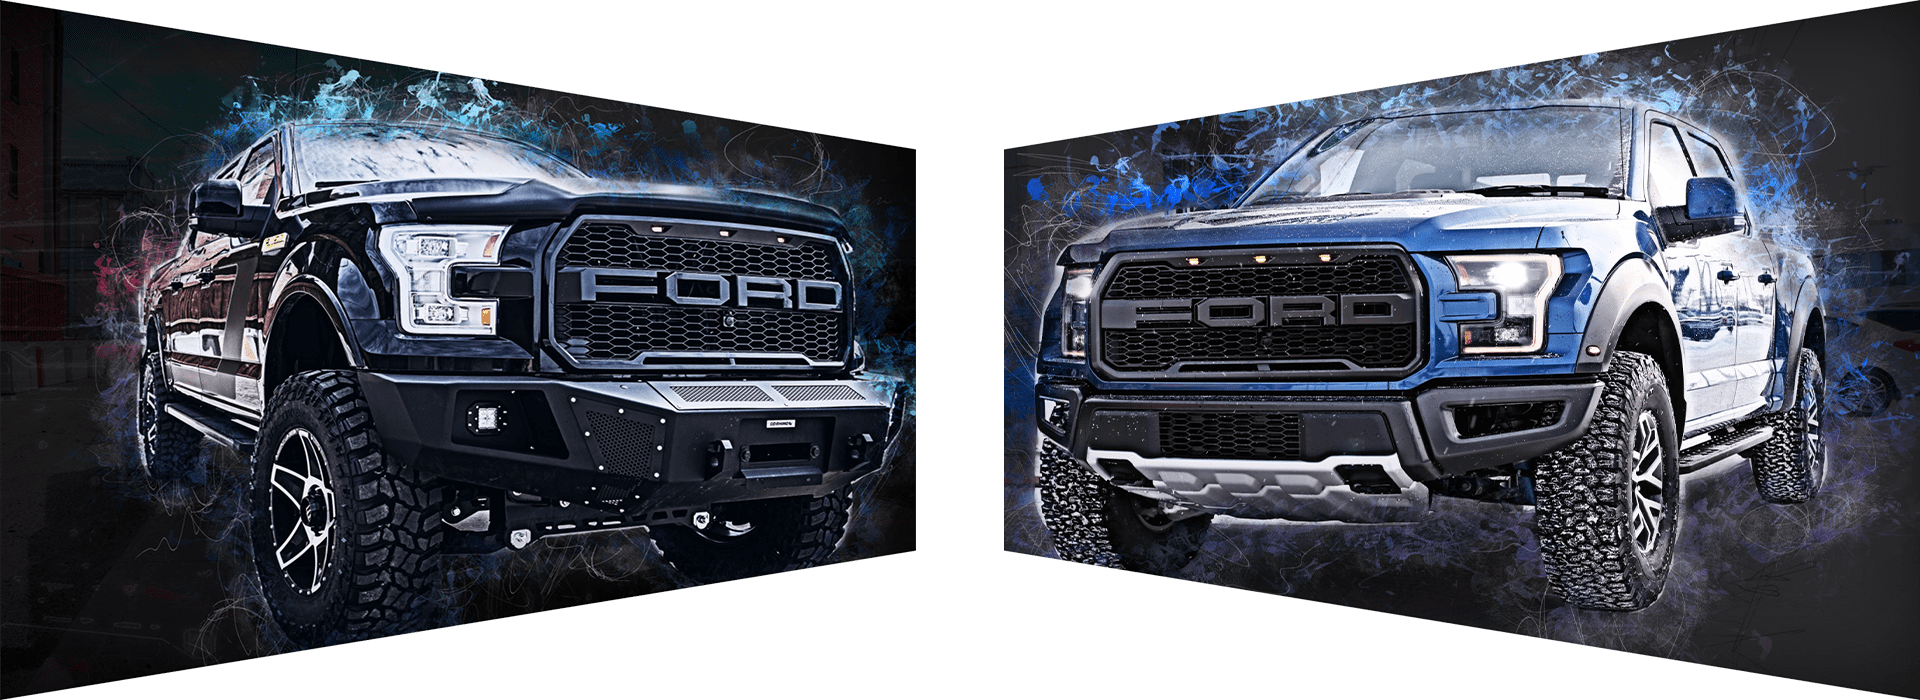 Two rugged looking Ford trucks